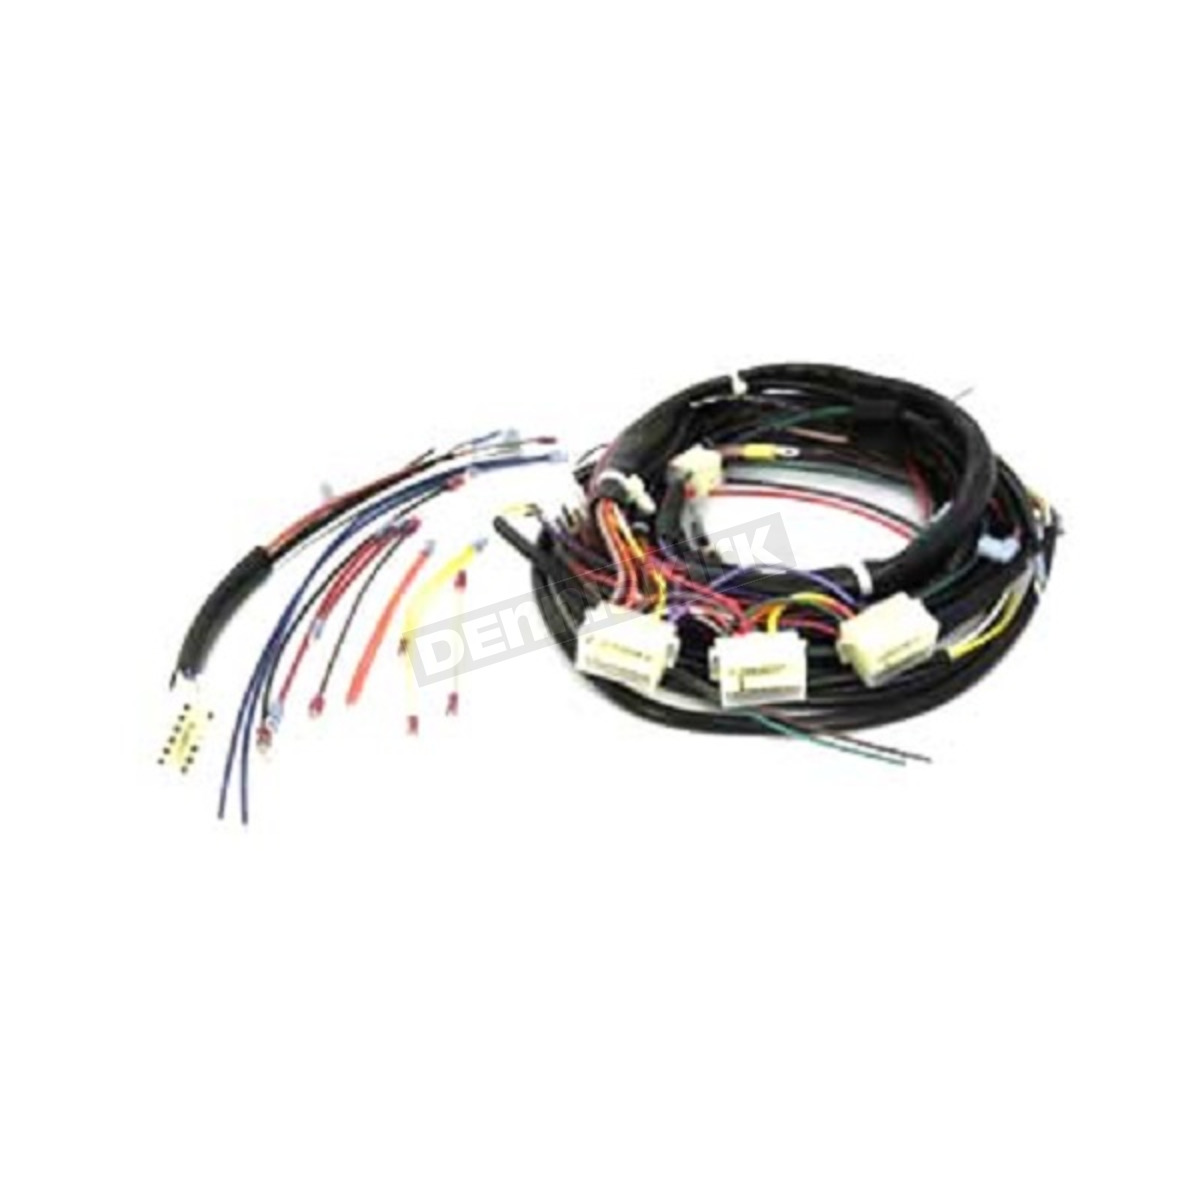 hight resolution of v twin manufacturing builders wiring harness 32 0456 harley custom chopper wire harness cv4869 electrical products softail